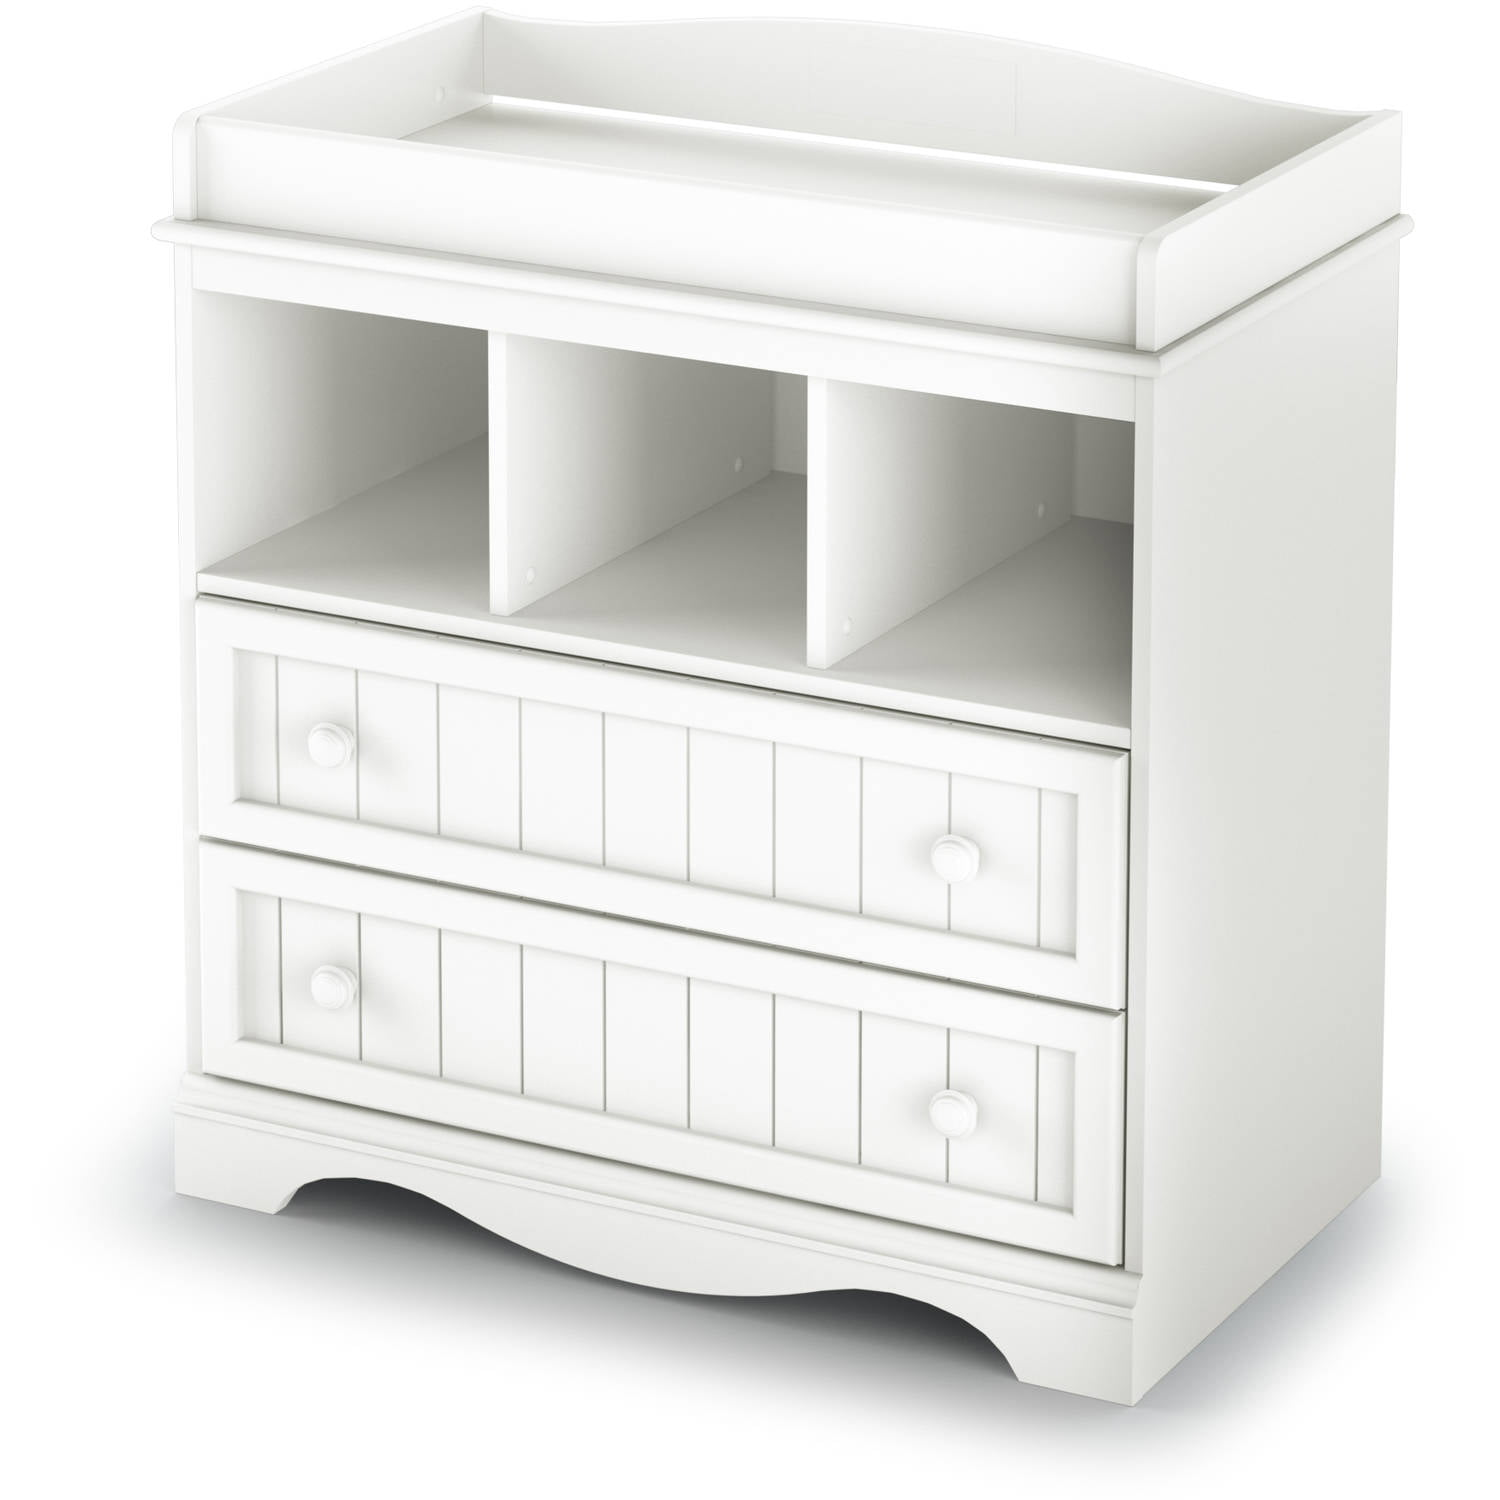 South Shore Savannah Changing Table with Drawers, Multiple Finishes by South Shore Furniture